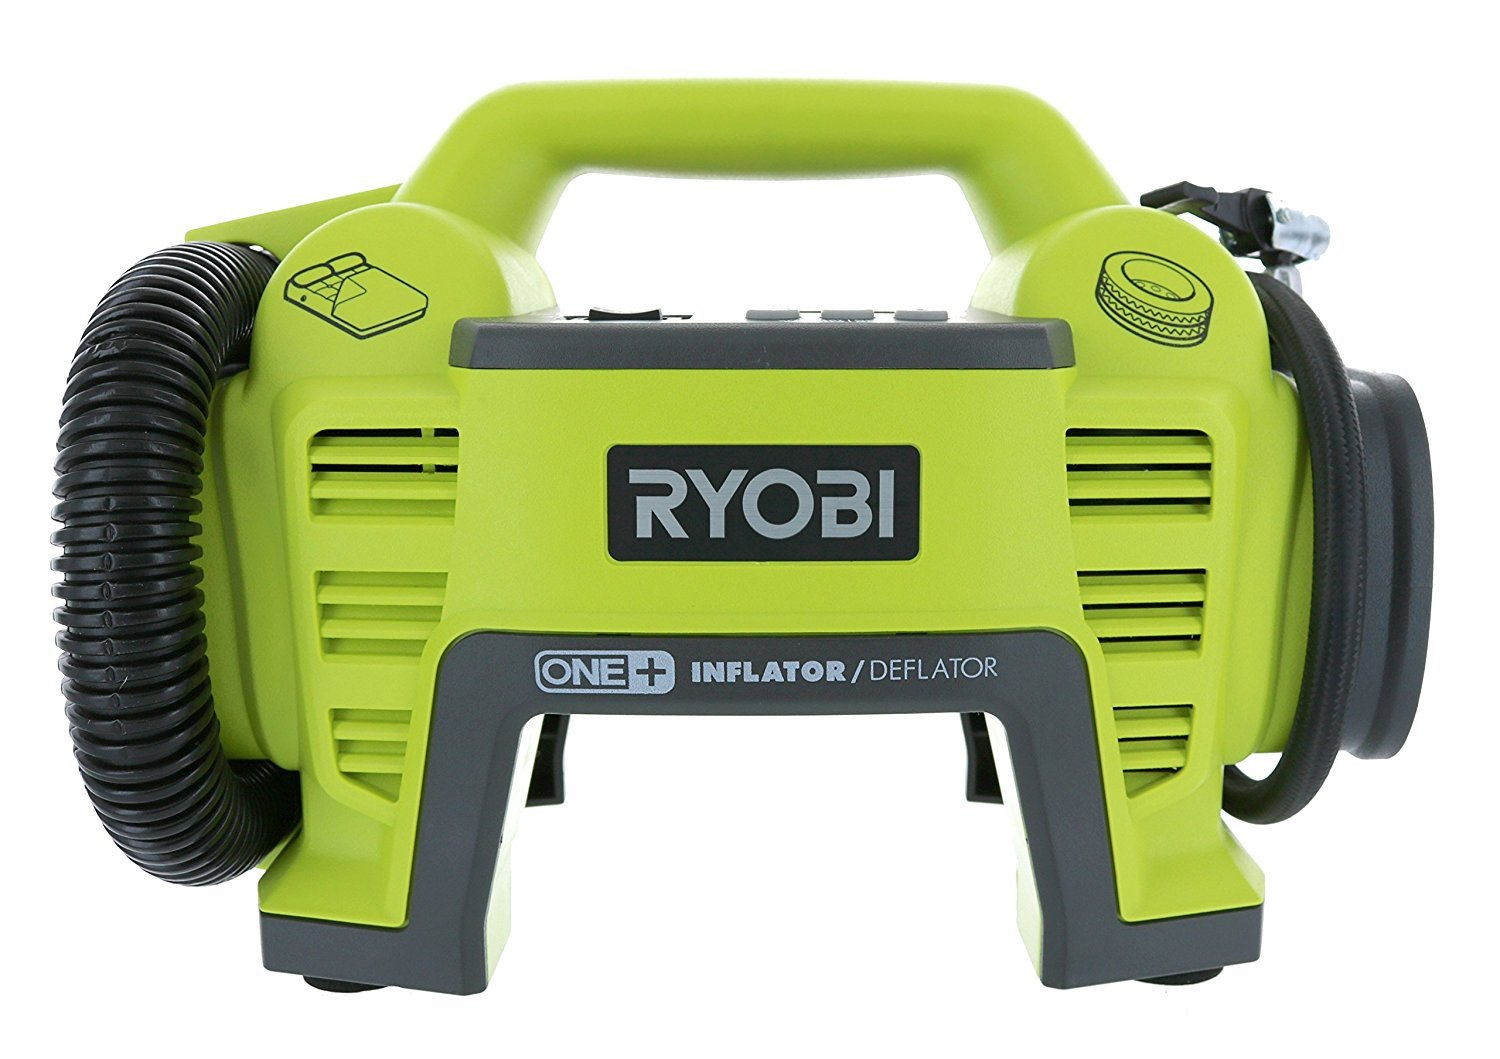 Ryobi P731 One+ 18v Dual Function Power Inflator/Deflator Cordless Air Compressor Kit w/ Adapters (Battery Not Included, Tool Only)